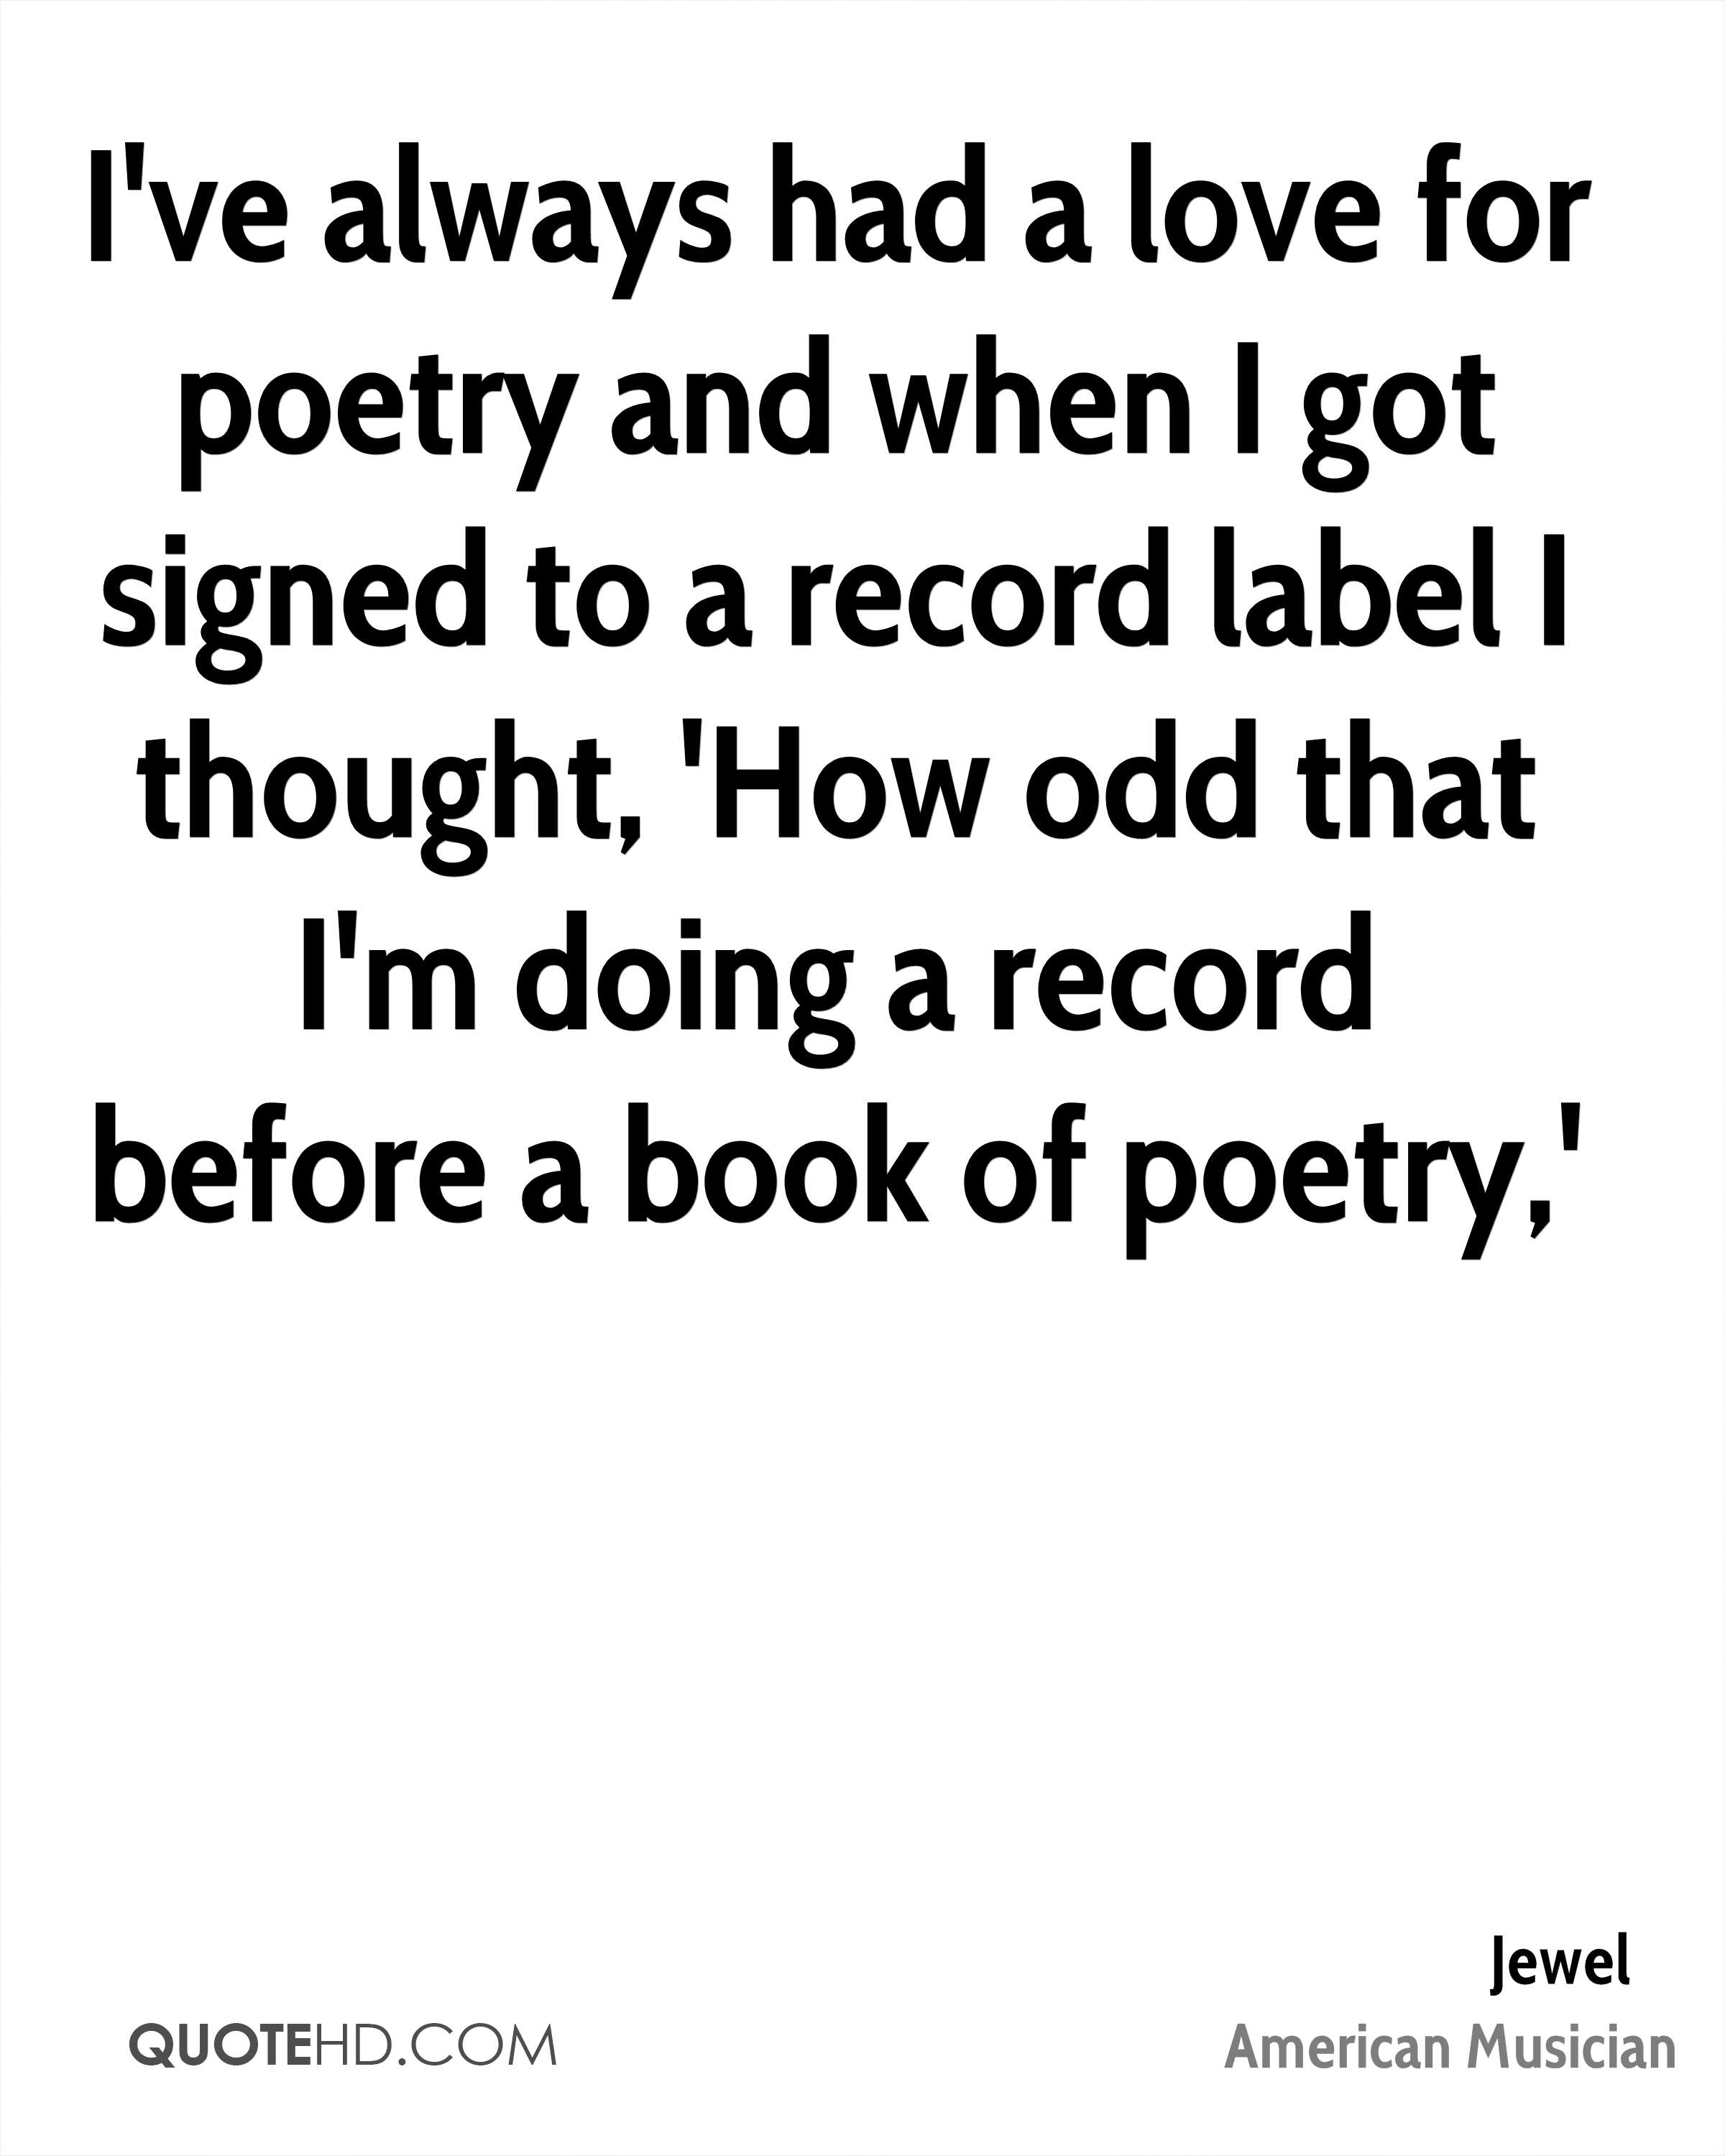 I've always had a love for poetry and when I got signed to a record label I thought, 'How odd that I'm doing a record before a book of poetry,'